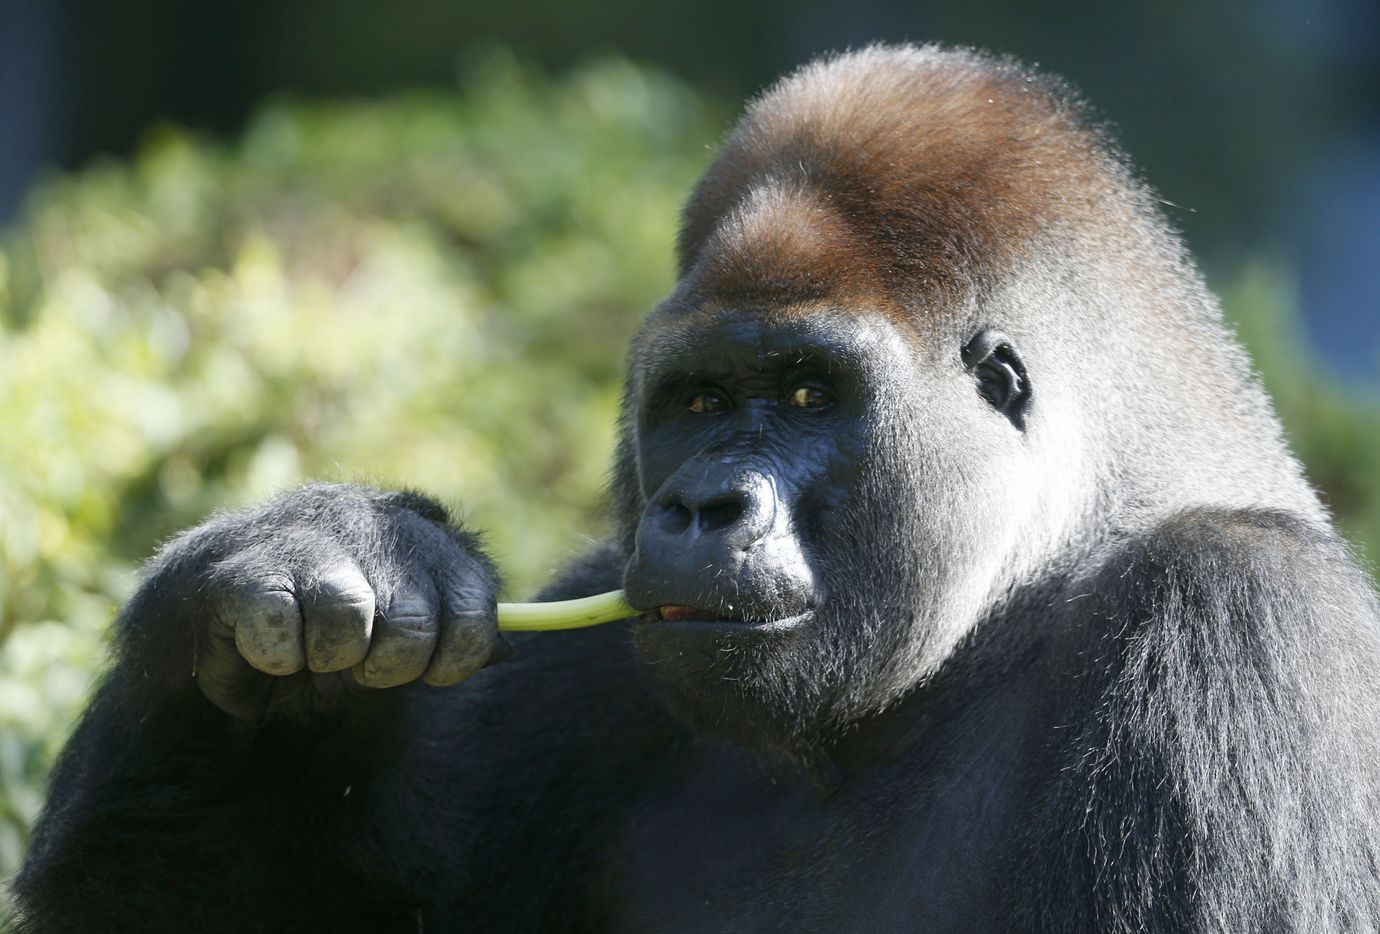 Subira eats celery at the Dallas Zoo in Dallas on Thursday, July 5, 2018. Subira is the father of the new baby gorilla. The newborn is the fifth the zoo has cared for in nearly 50 years and the first born at the zoo since it welcomed Wakub, also known as Jake, in January 1998. (Vernon Bryant/The Dallas Morning News)